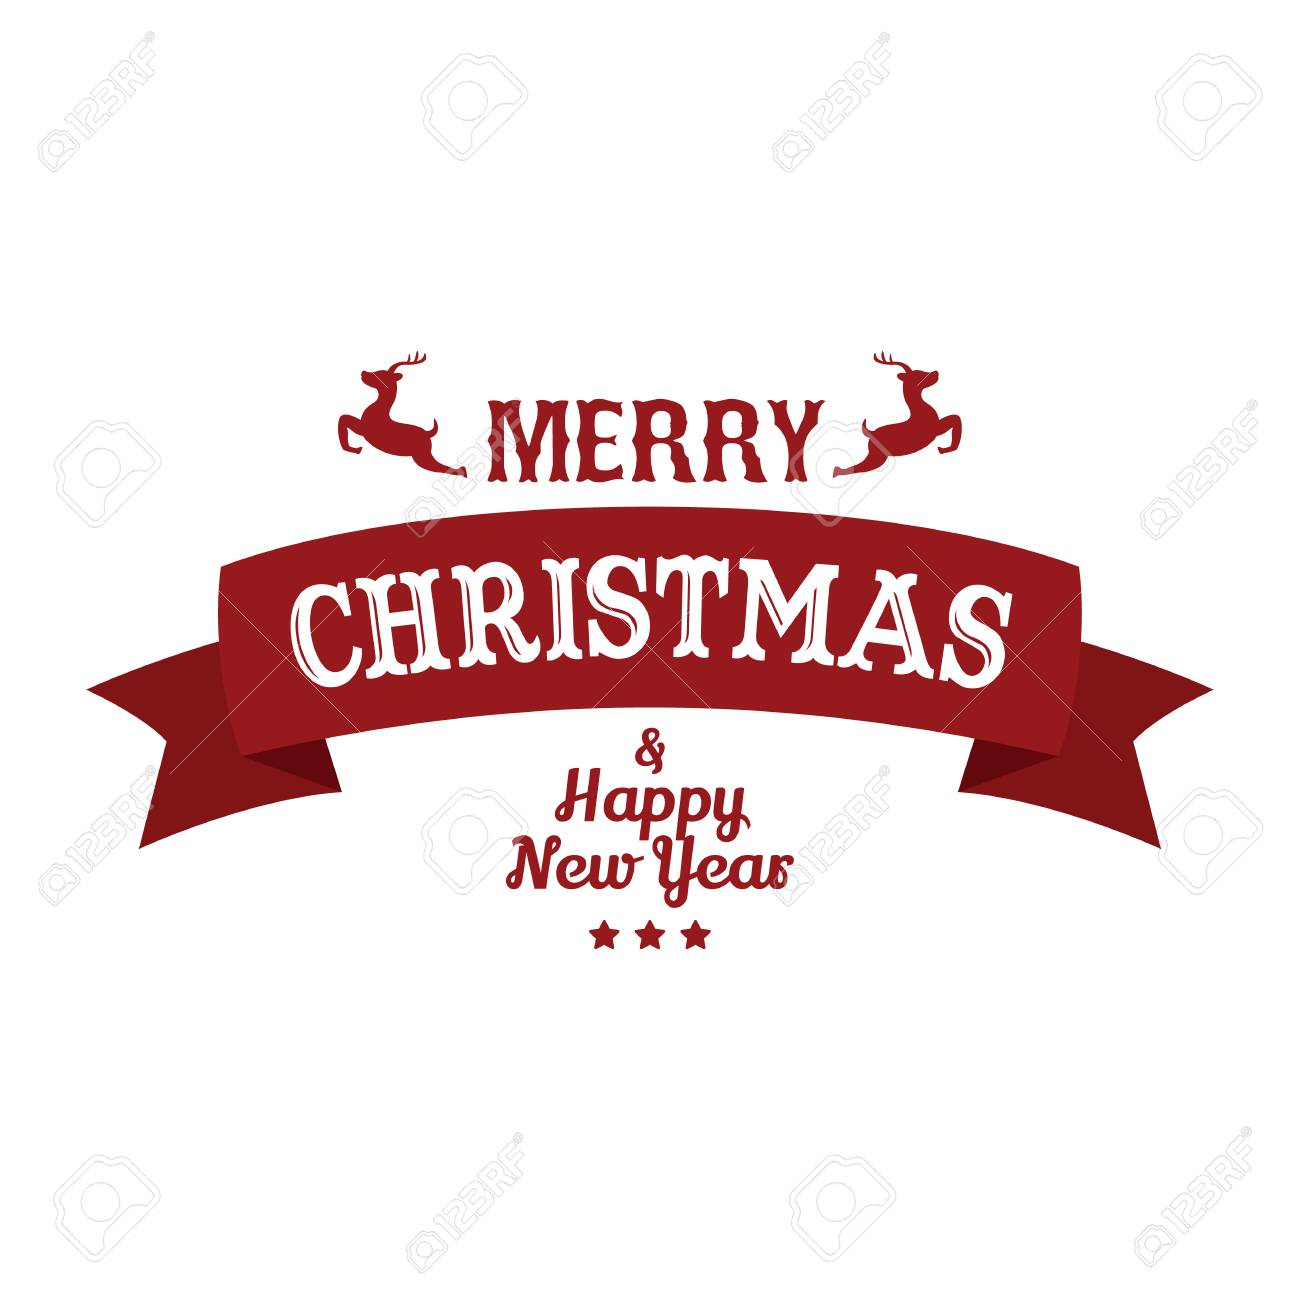 merry christmas and happy new year vector art royalty free cliparts vectors and stock illustration image 85070141 merry christmas and happy new year vector art